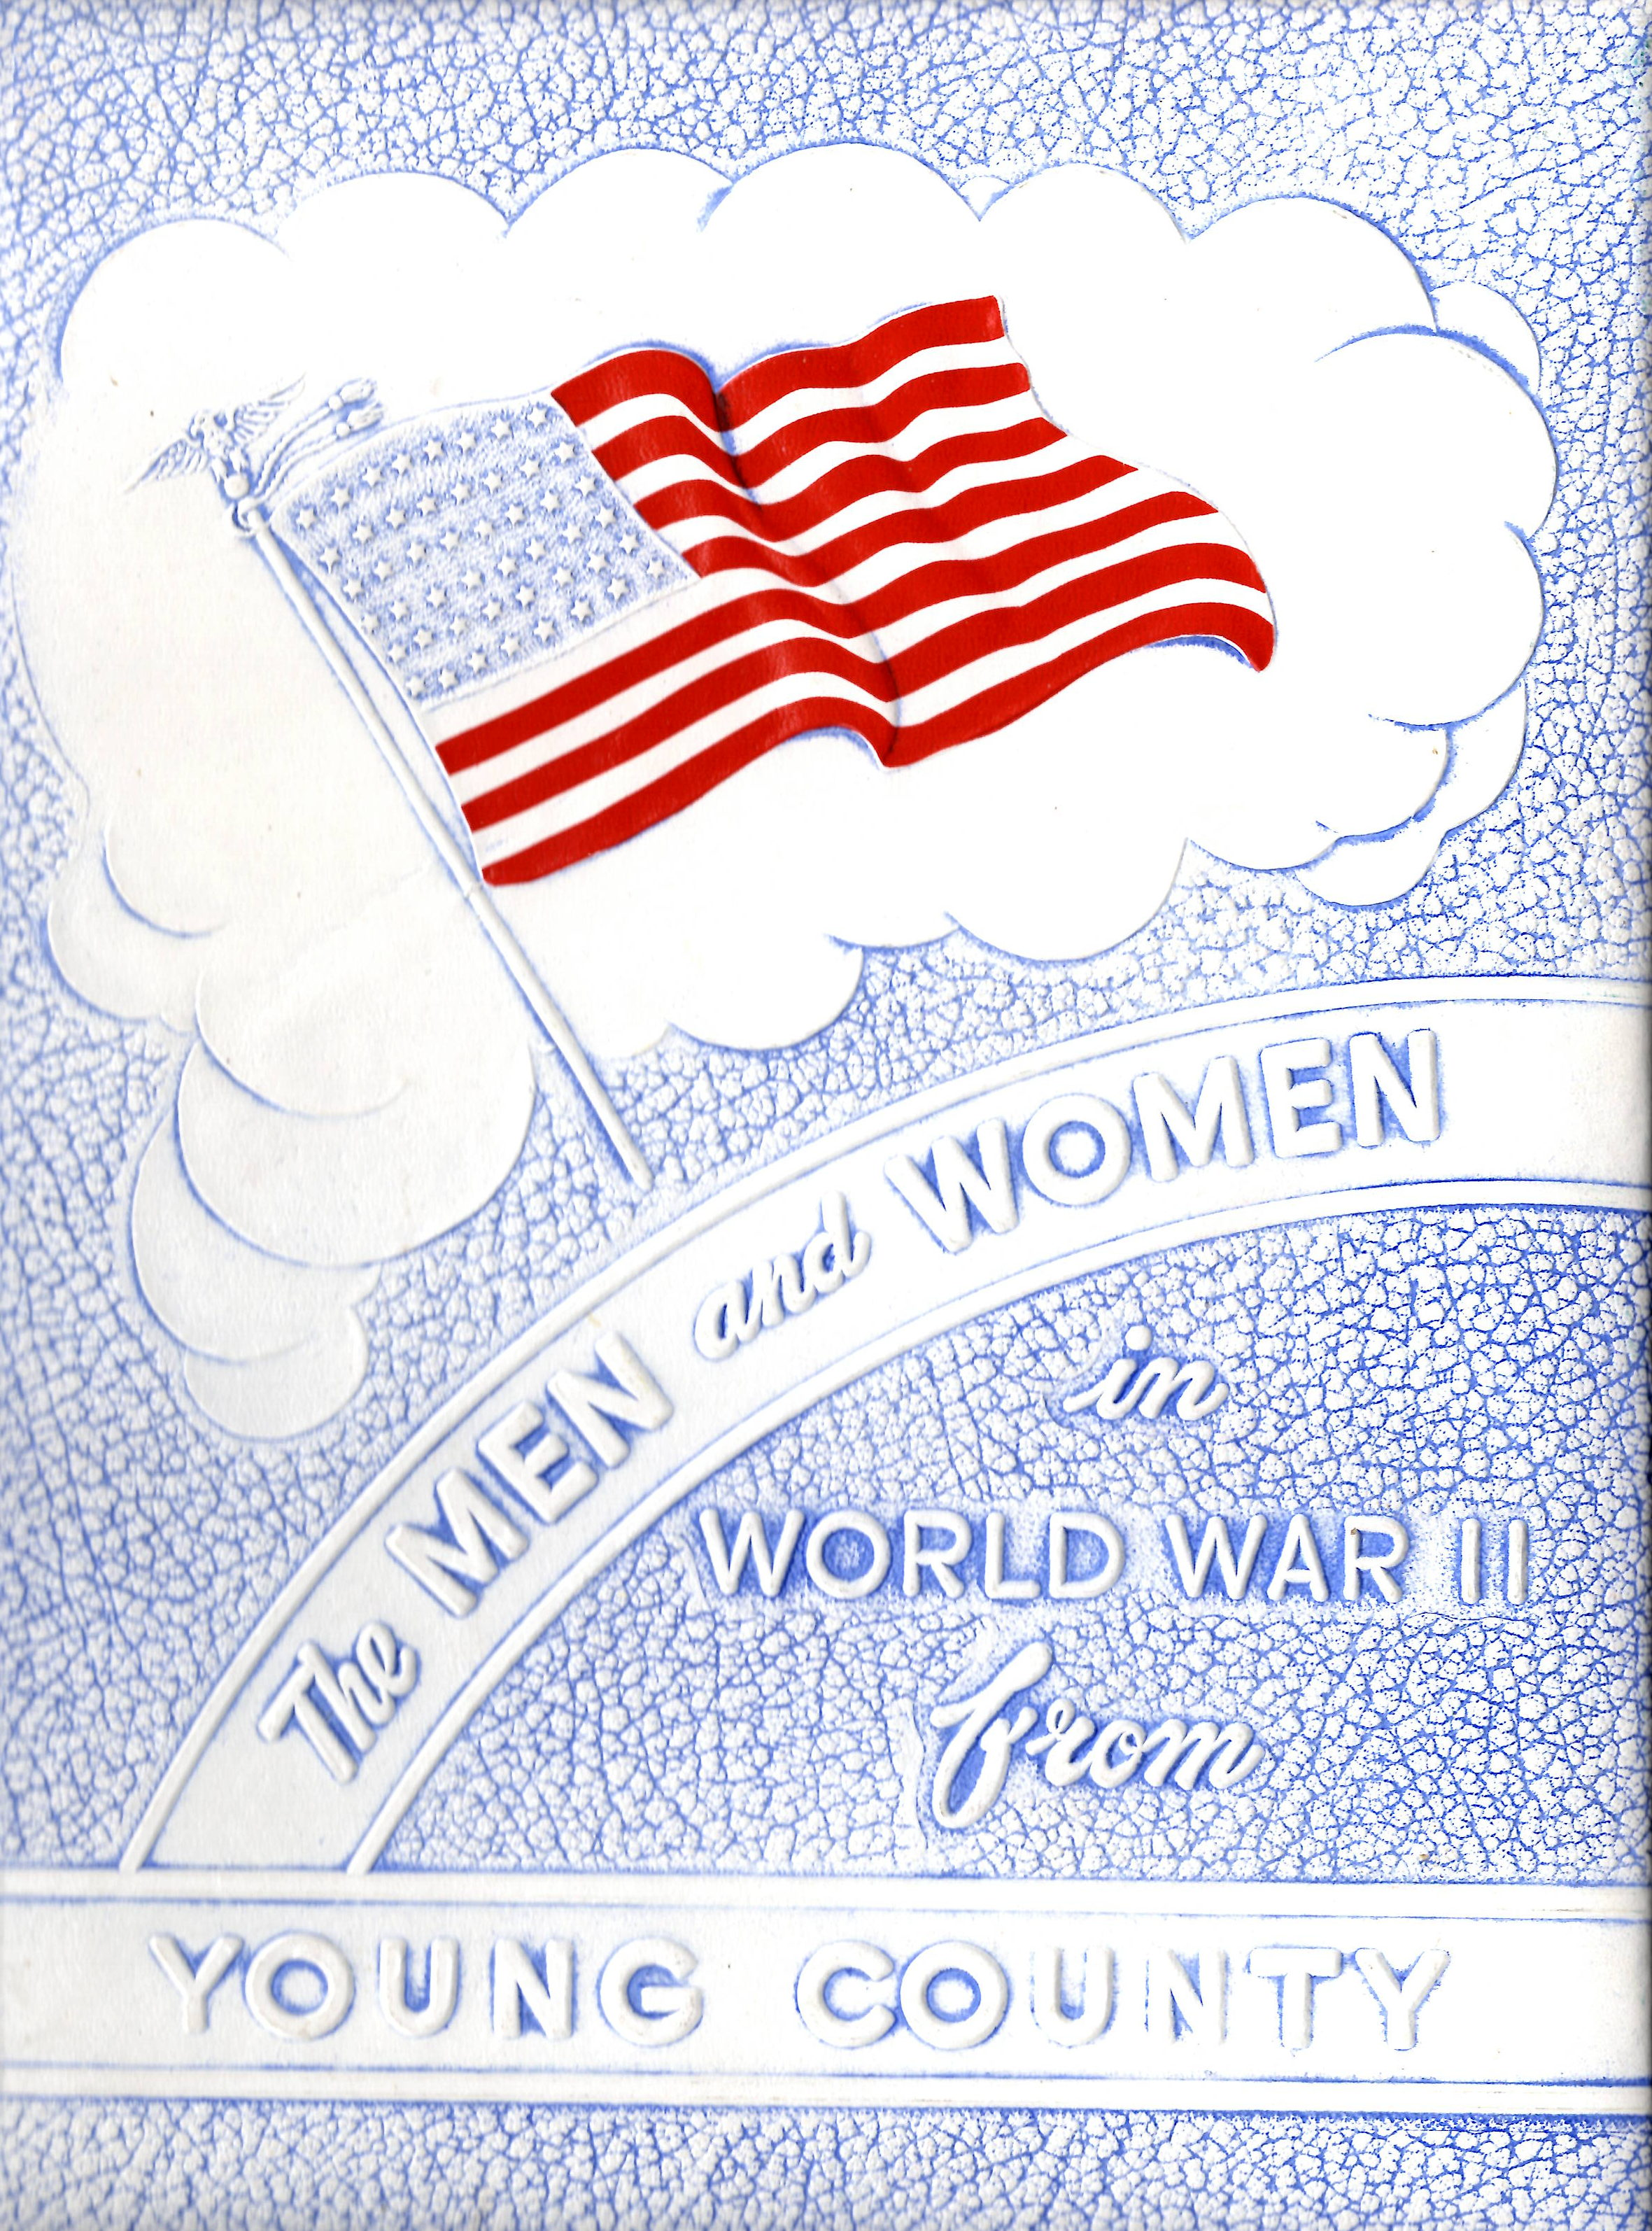 Men and women in the Armed Forces from Young County Texas World War Two 2 II WW2 WWII